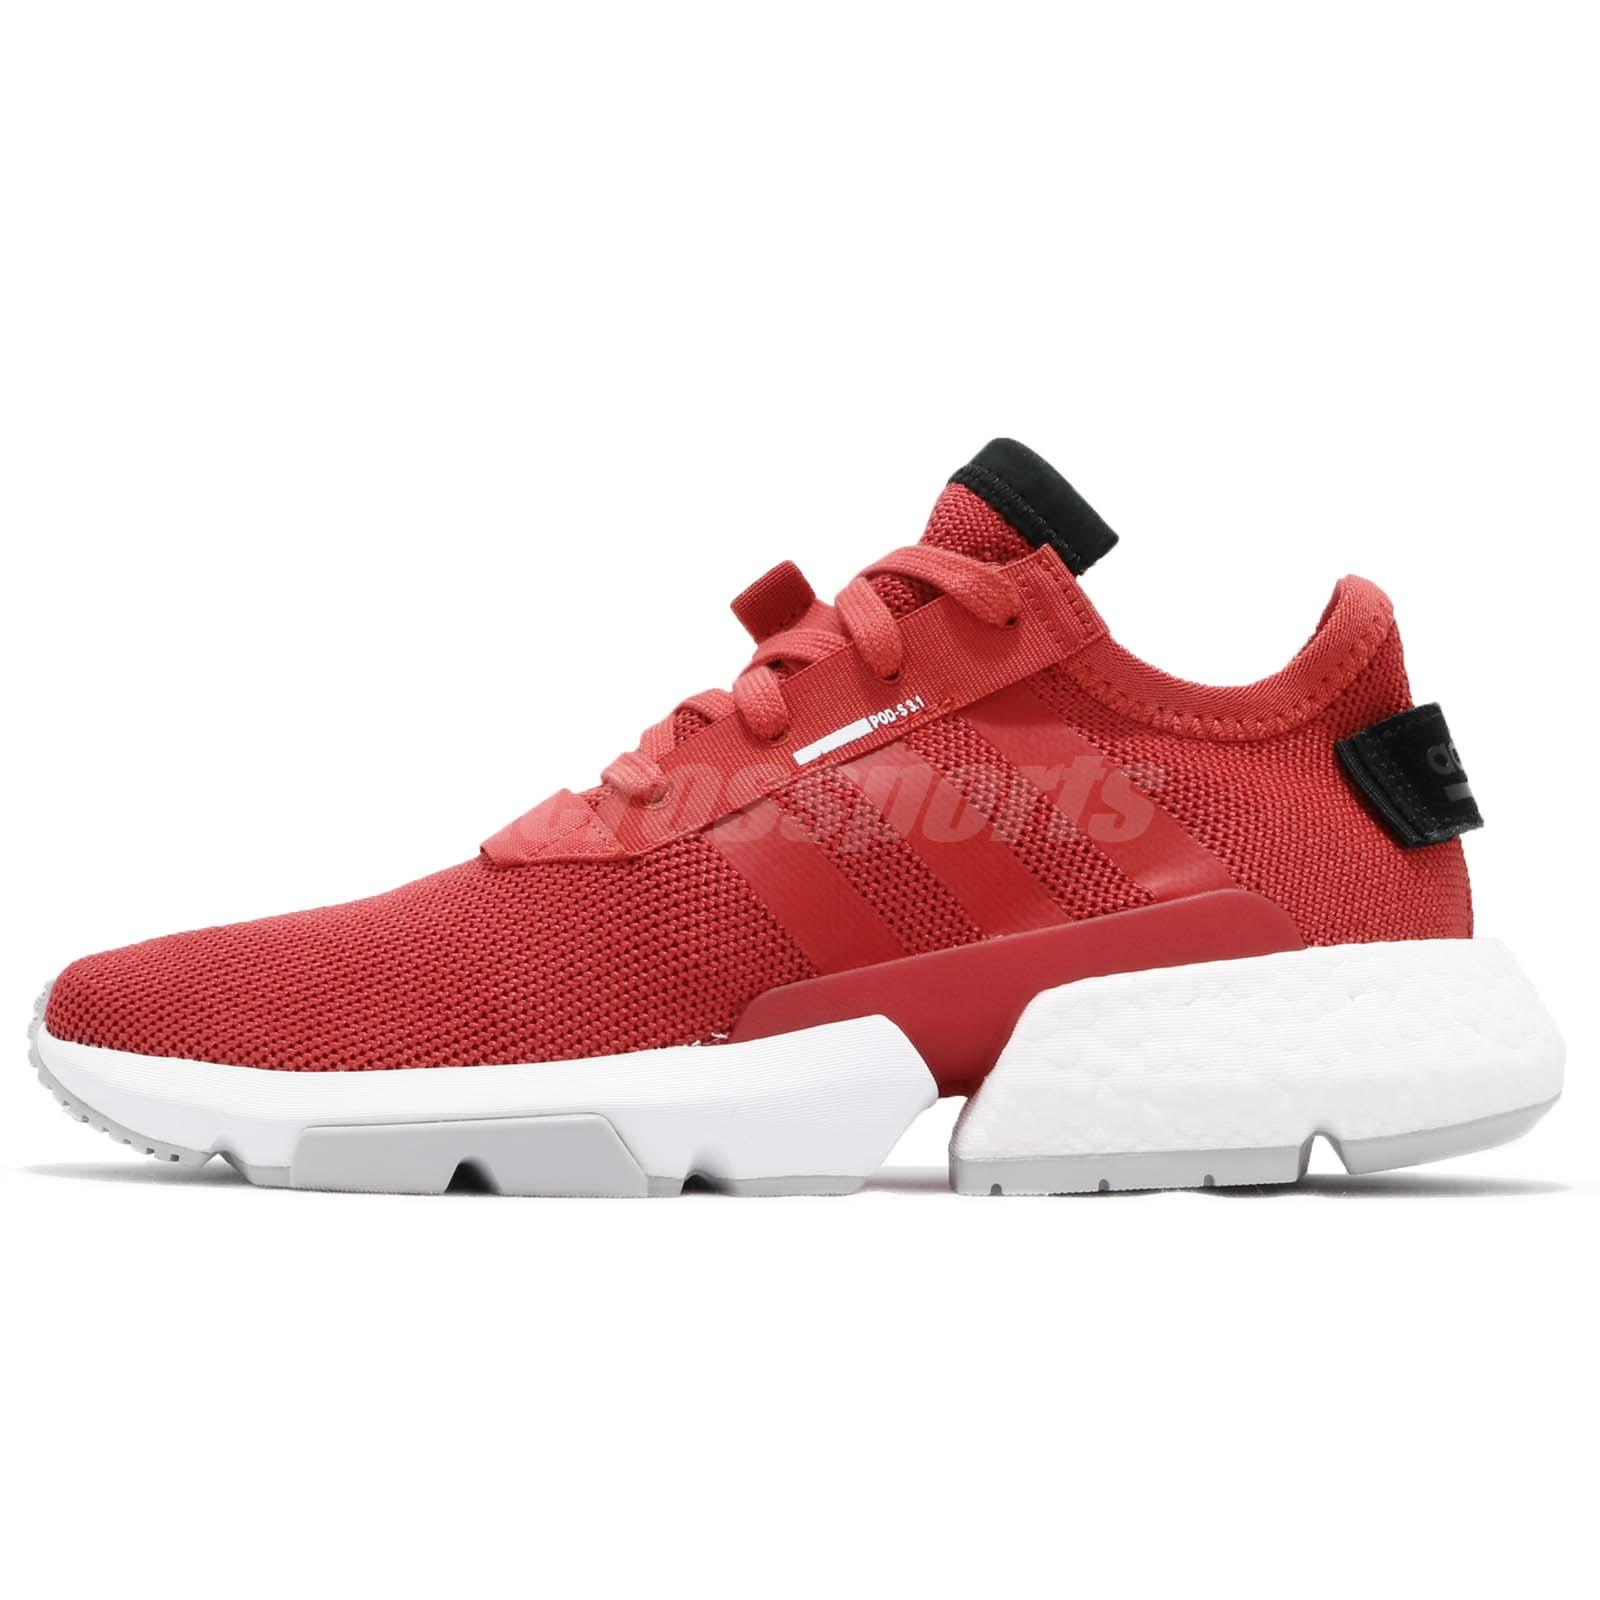 adidas Originals POD-S3.1 System Tactile Red Men Running Shoes Sneakers  D97202 f847ebeef21